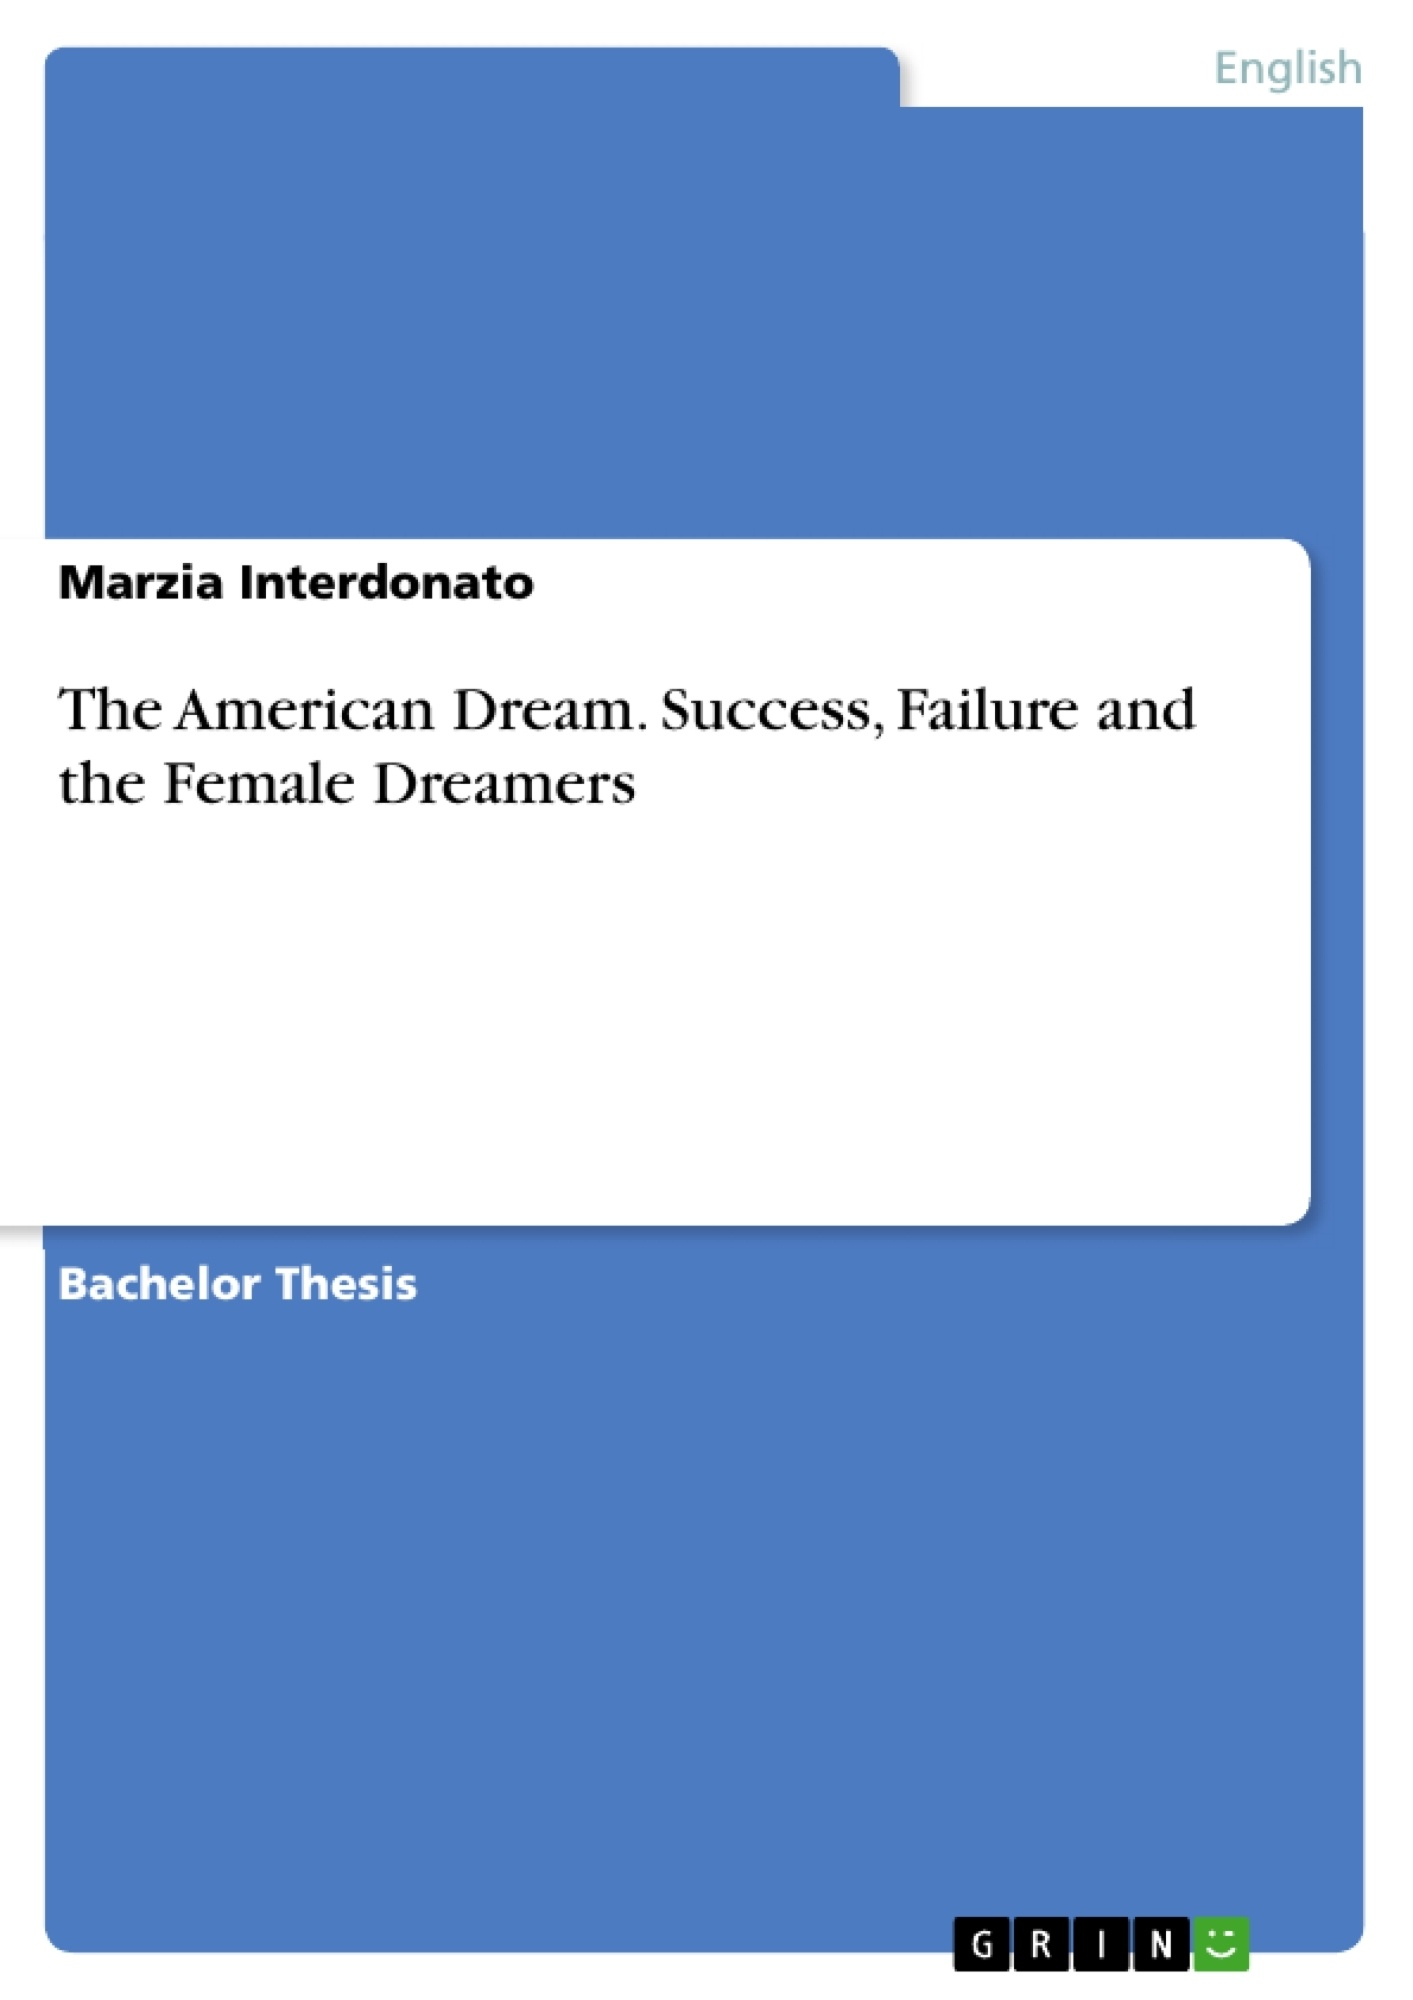 Title: The American Dream. Success, Failure and the Female Dreamers